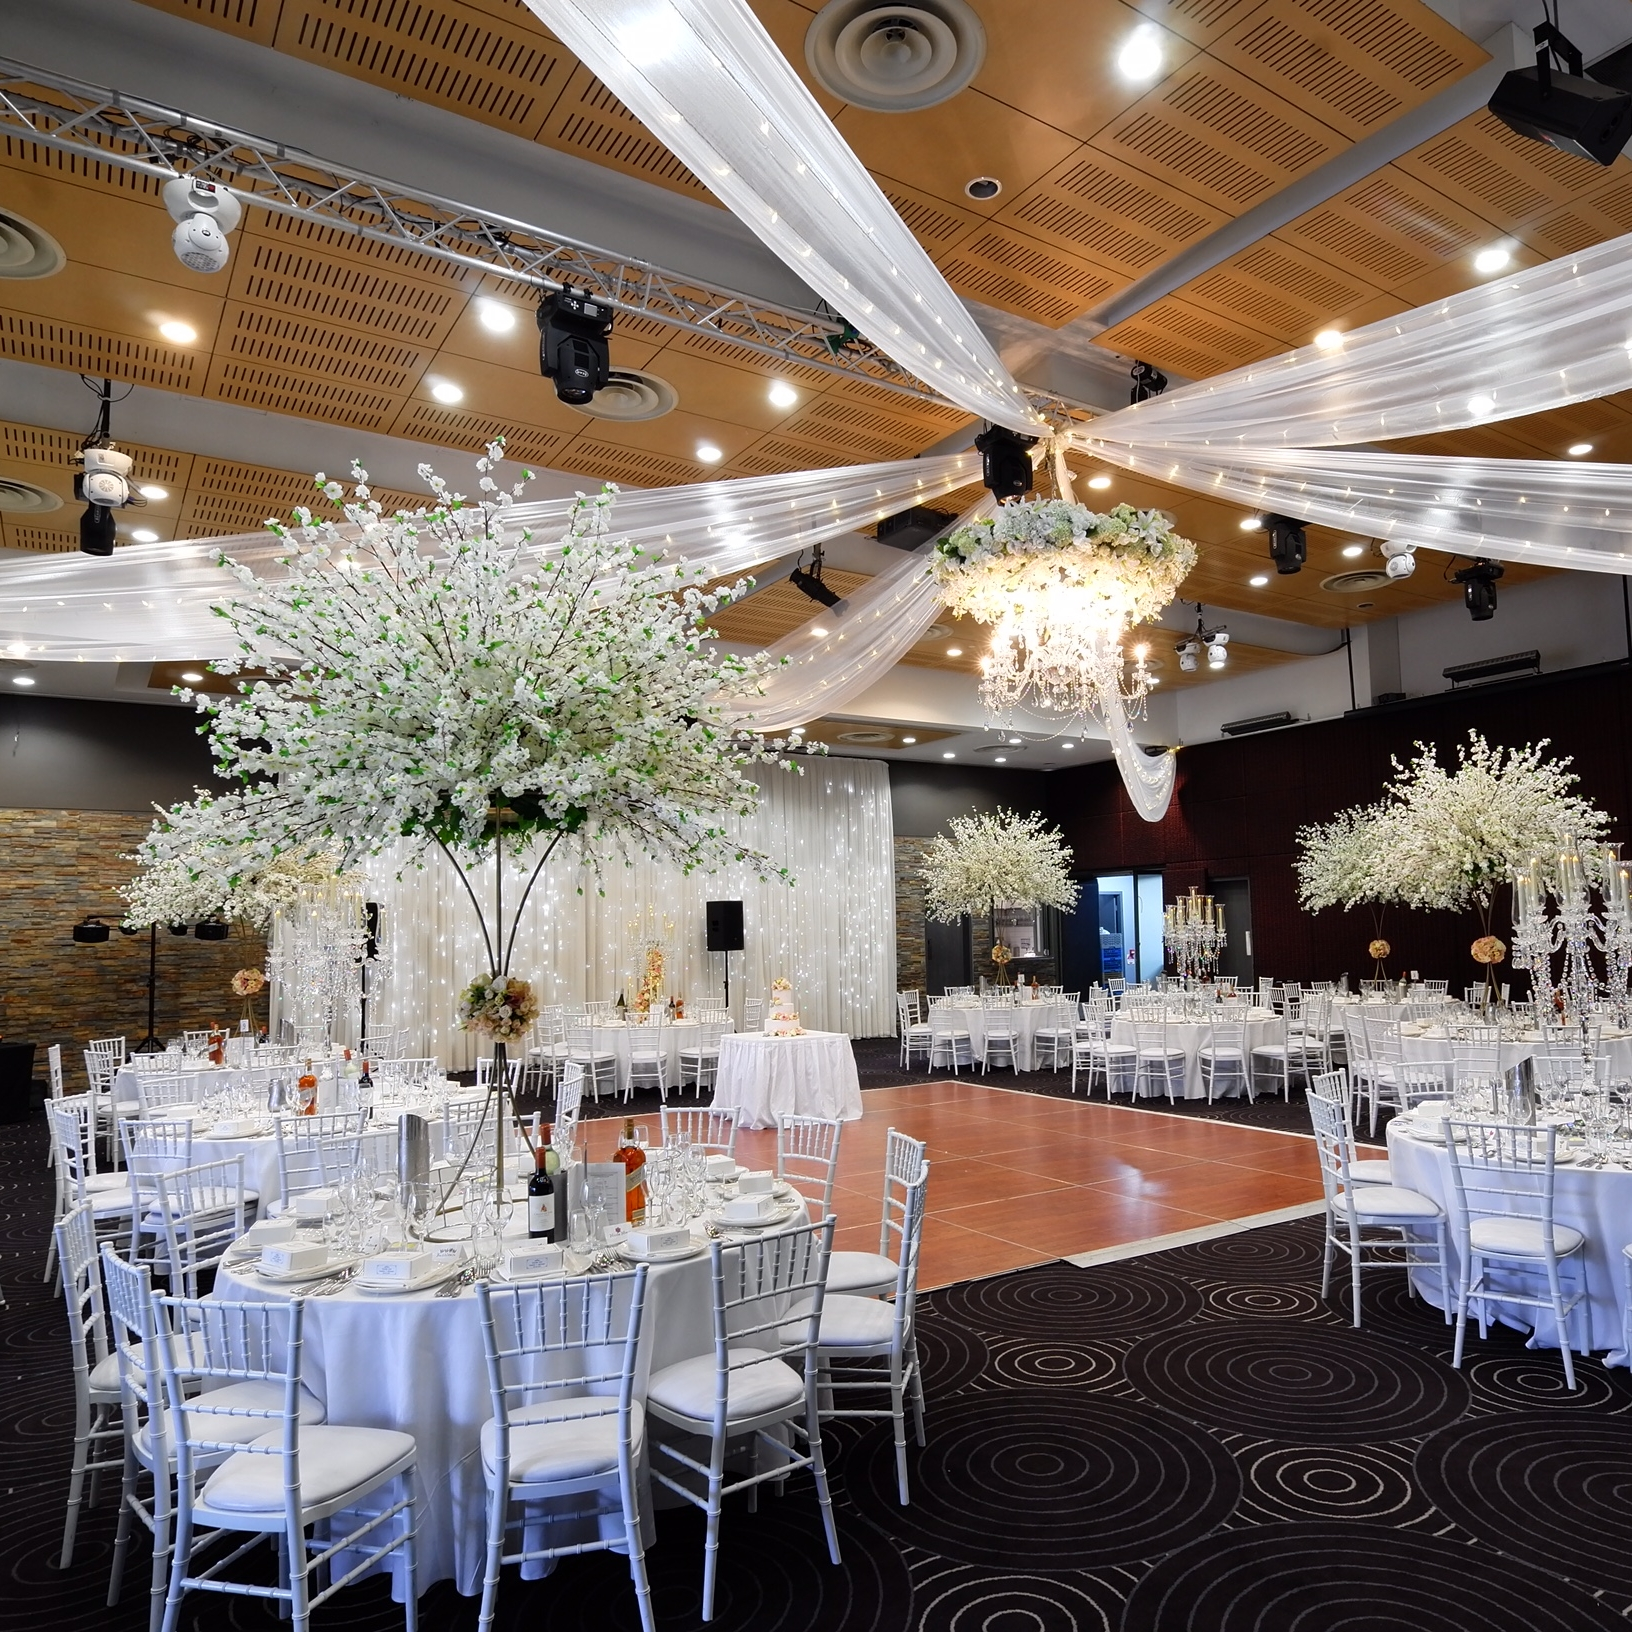 ceiling_draping_fairylights_floral_chadelier_waterview_in_bicentennial_park_weddings.JPG